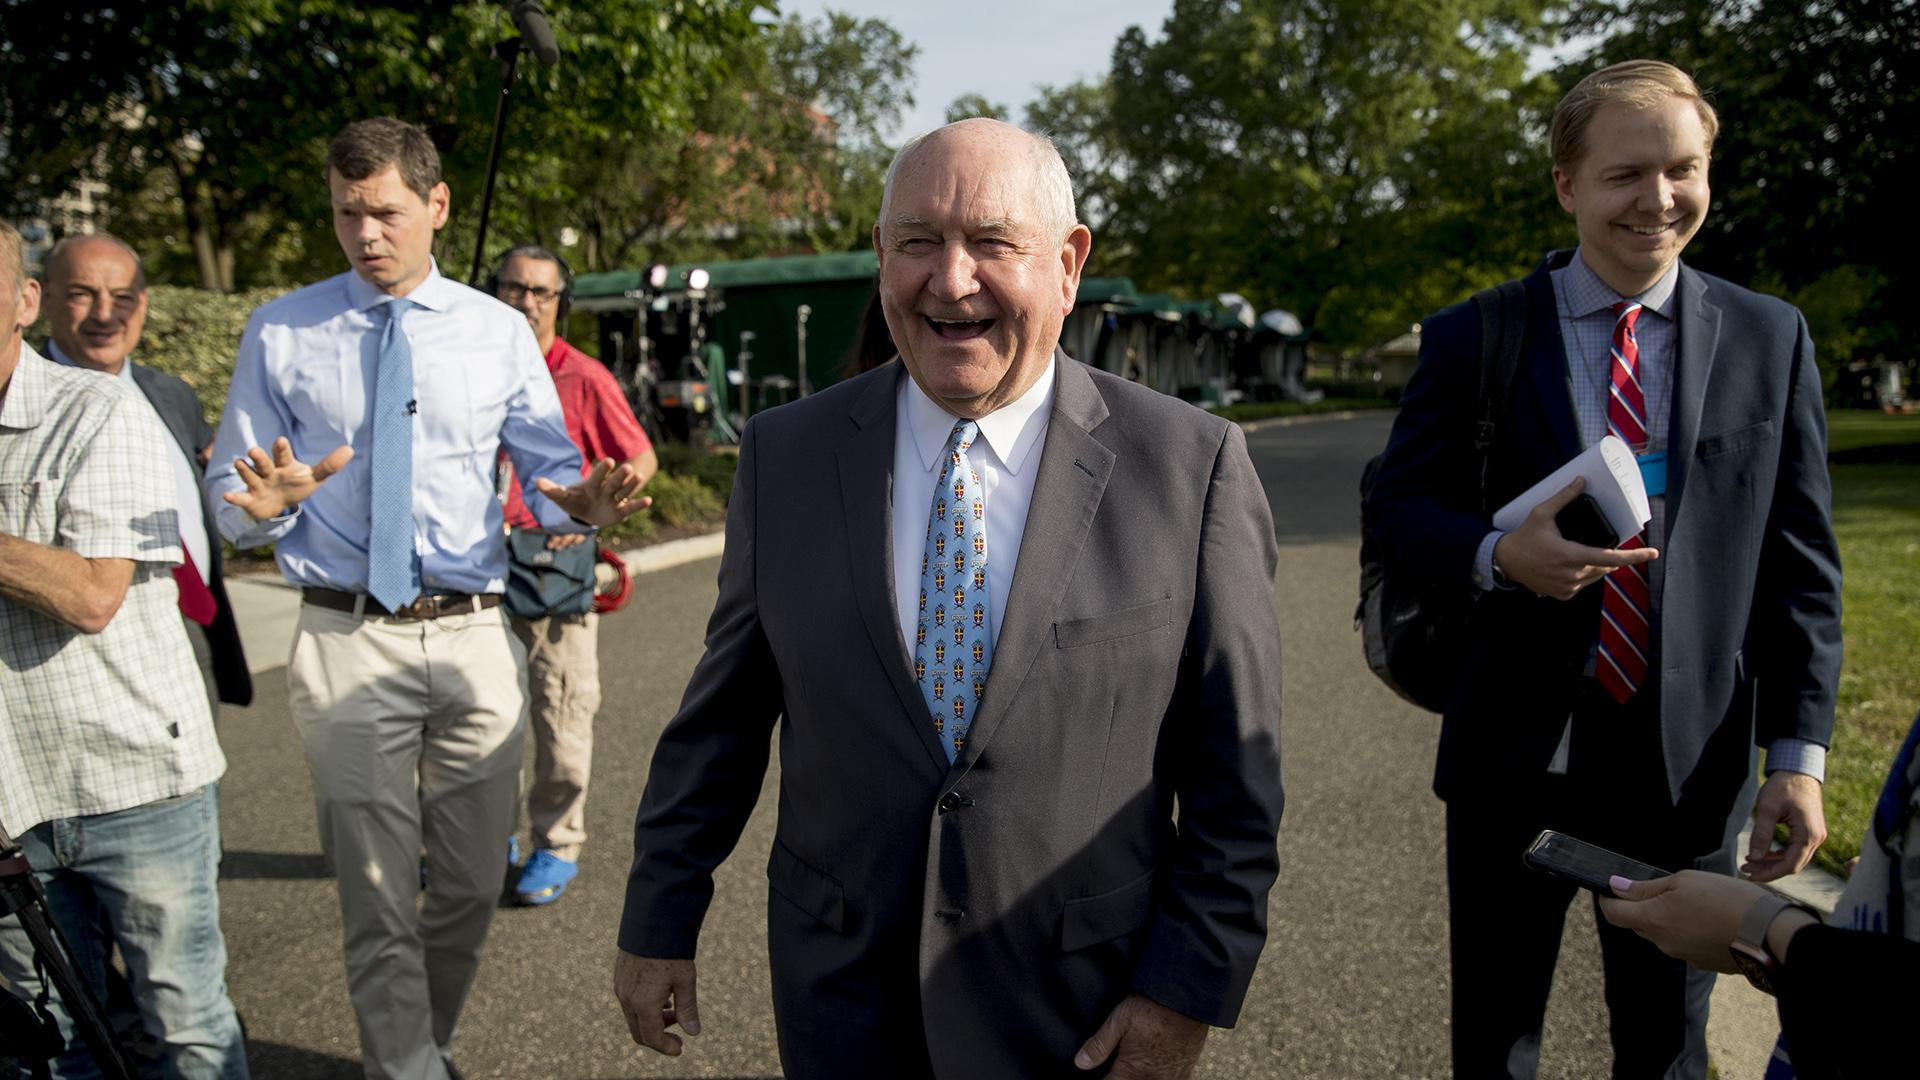 Agriculture Secretary Sonny Perdue laughs with a reporter on the North Lawn of the White House in Washington, Thursday, May 23, 2019. (AP Photo / Andrew Harnik)